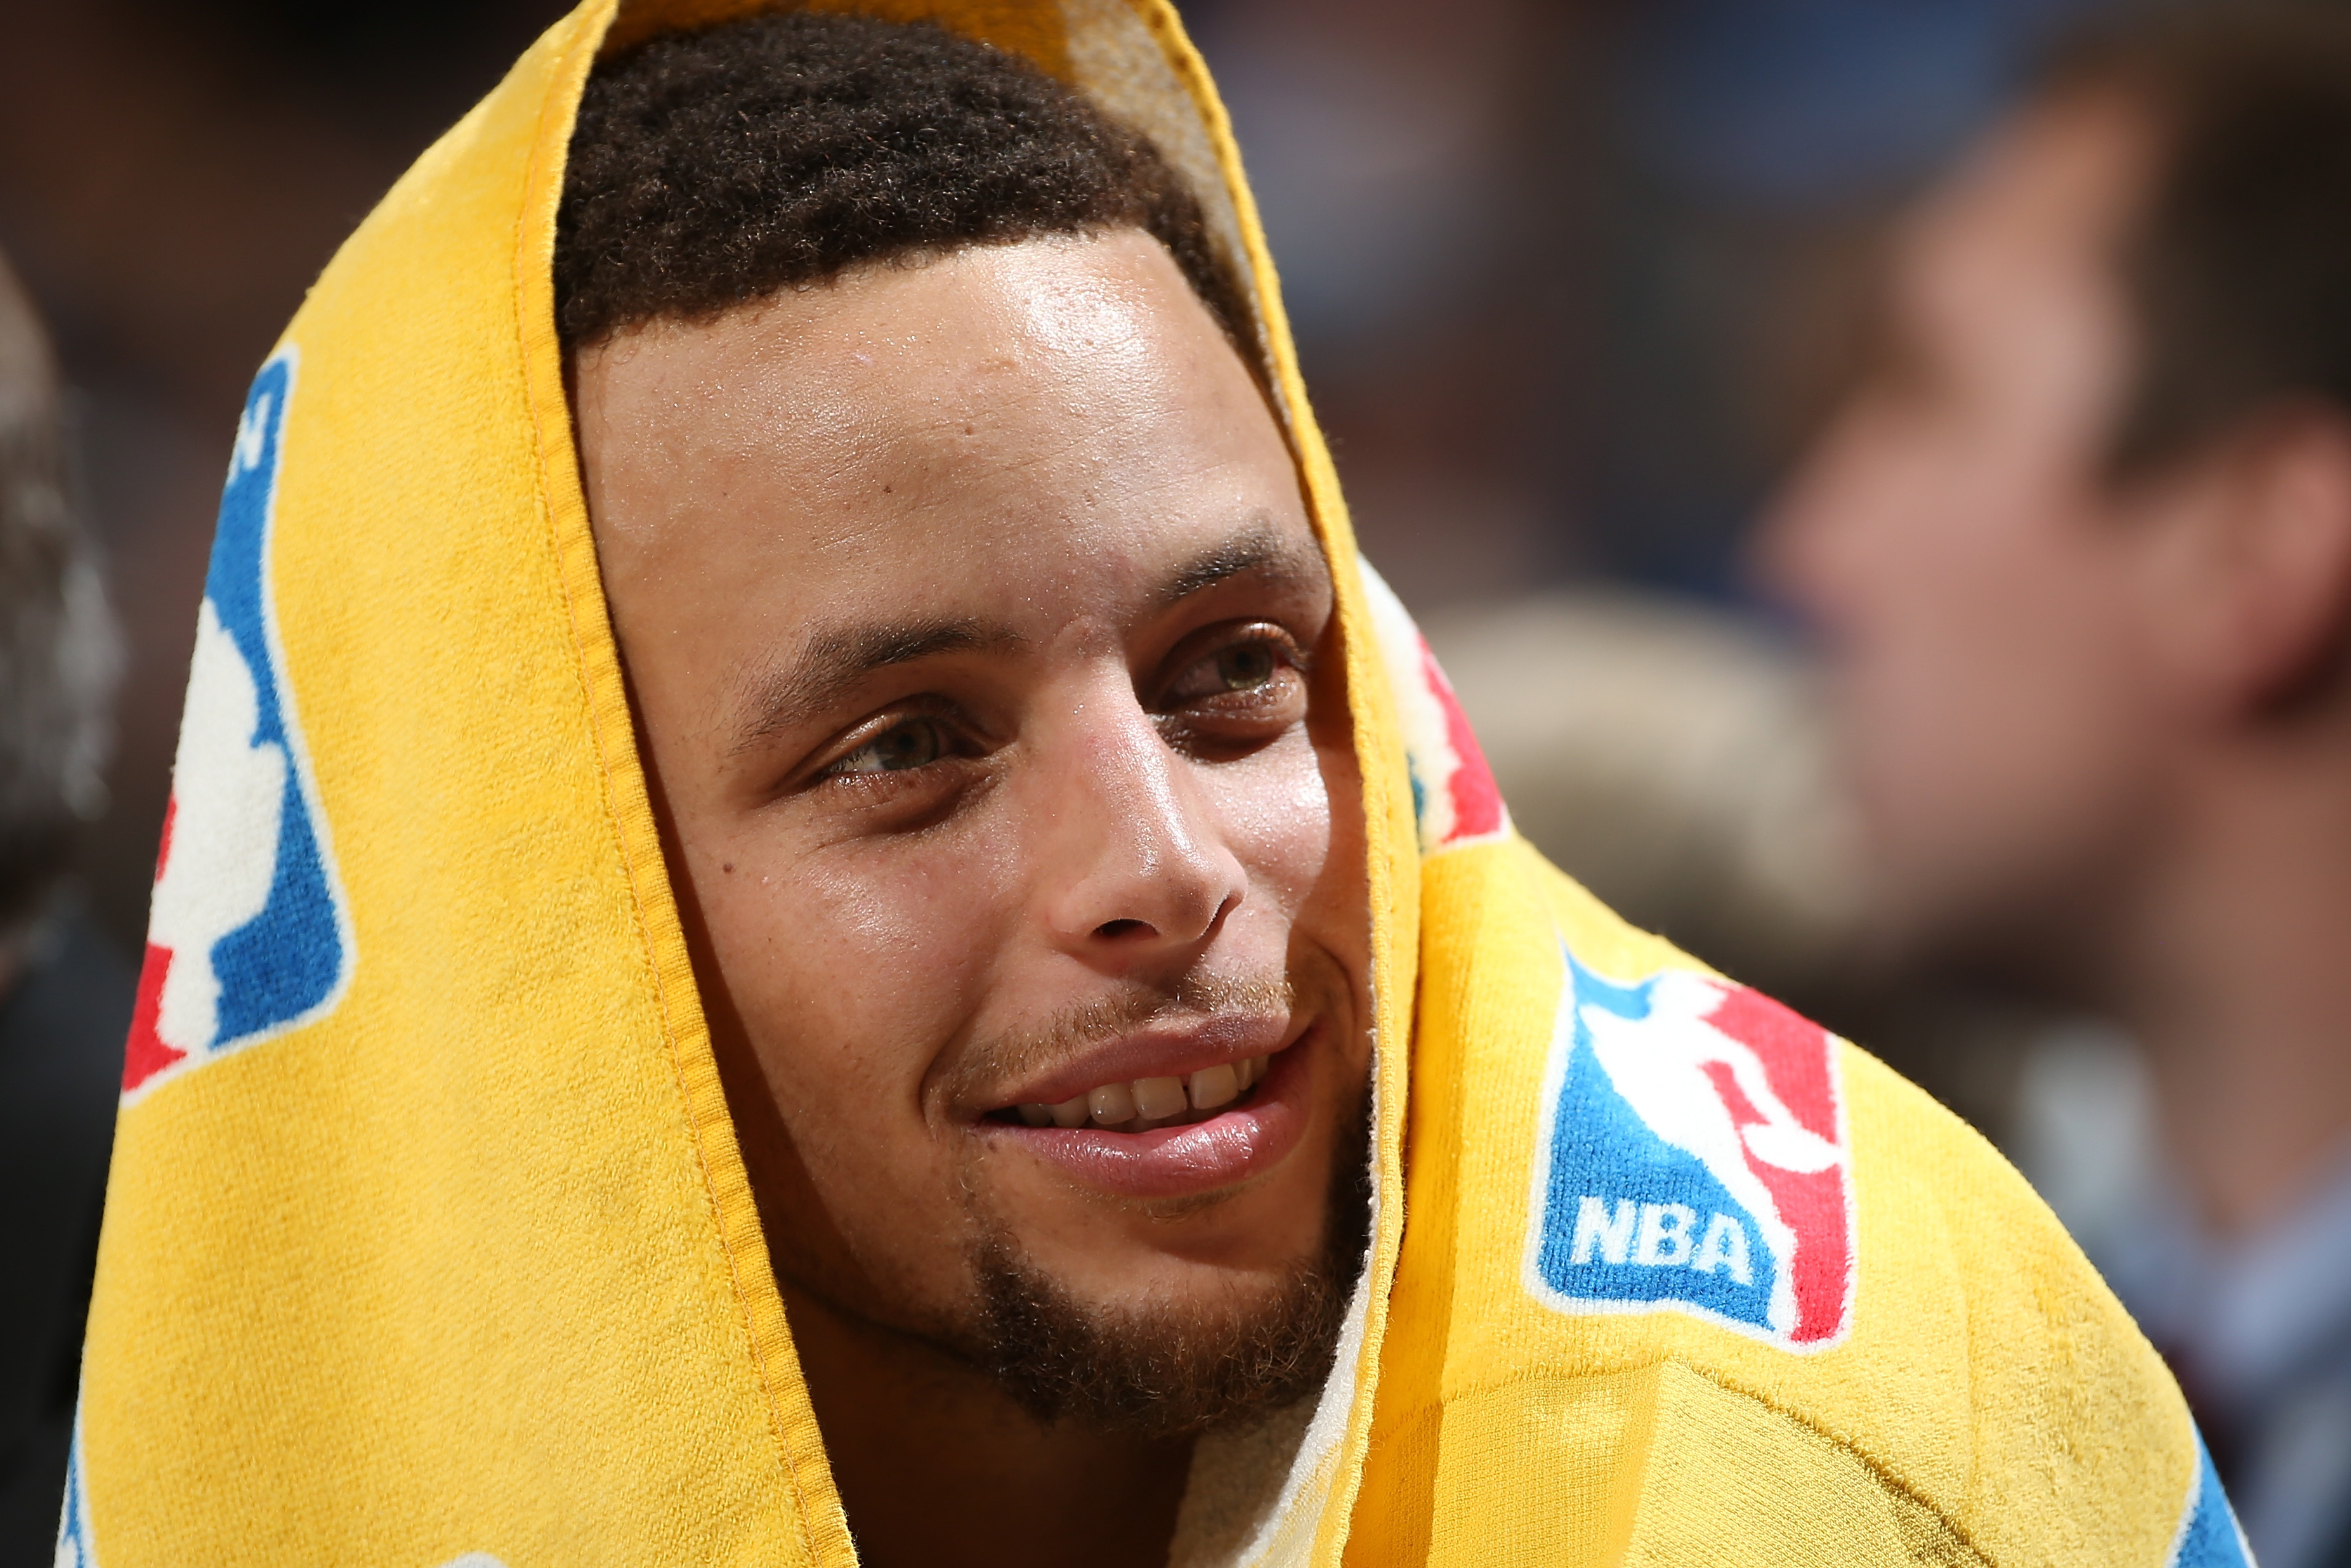 DENVER, CO - NOVEMBER 22:  Stephen Curry #30 of the Golden State Warriors looks on from the bench against the Denver Nuggets at Pepsi Center on November 22, 2015 in Denver, Colorado. The Warriors defeated the Nuggets 118-105 to start the season 15-0. (Pho